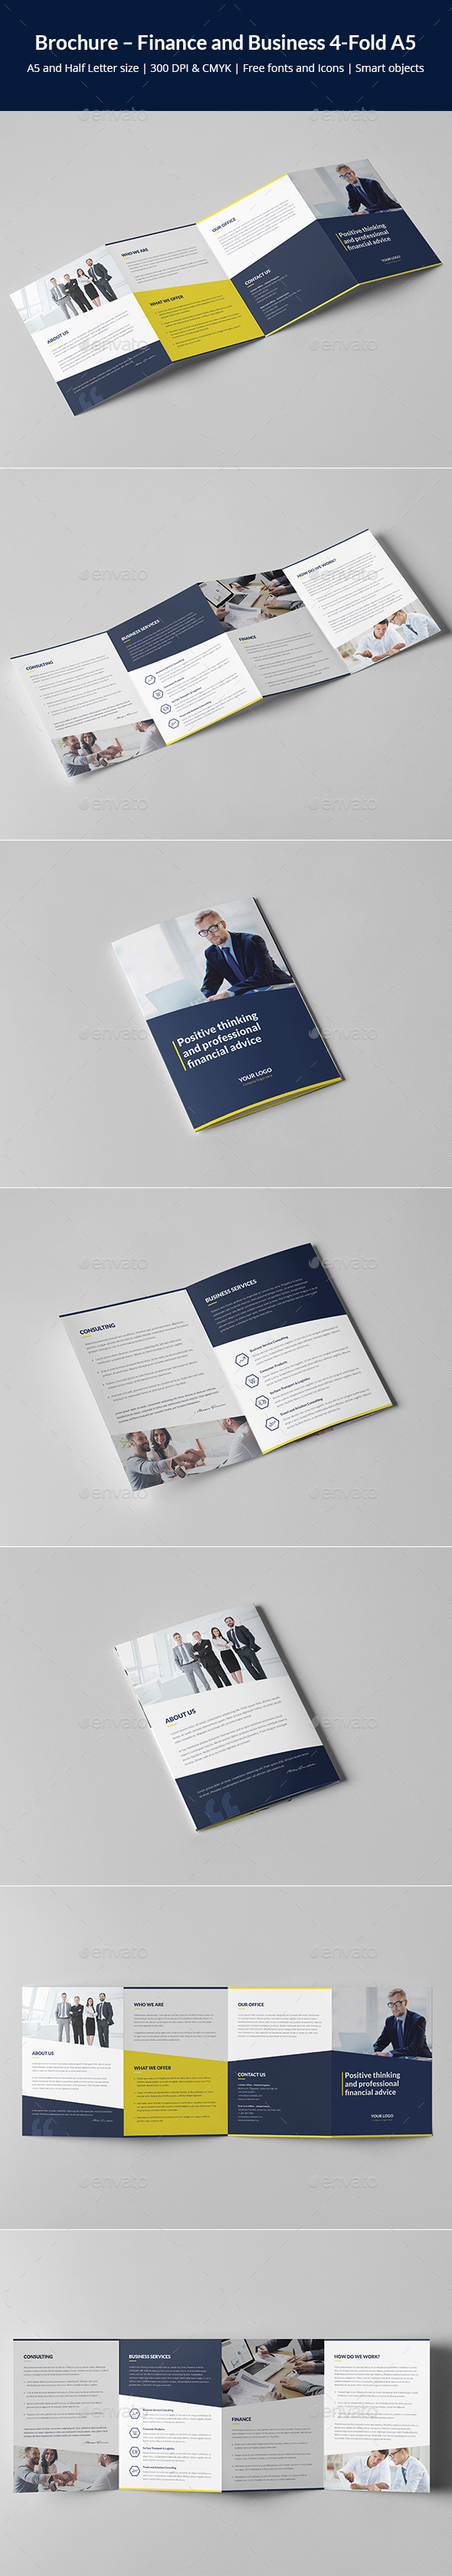 Brochure – Finance and Business 4-Fold A5 - Corporate Brochures